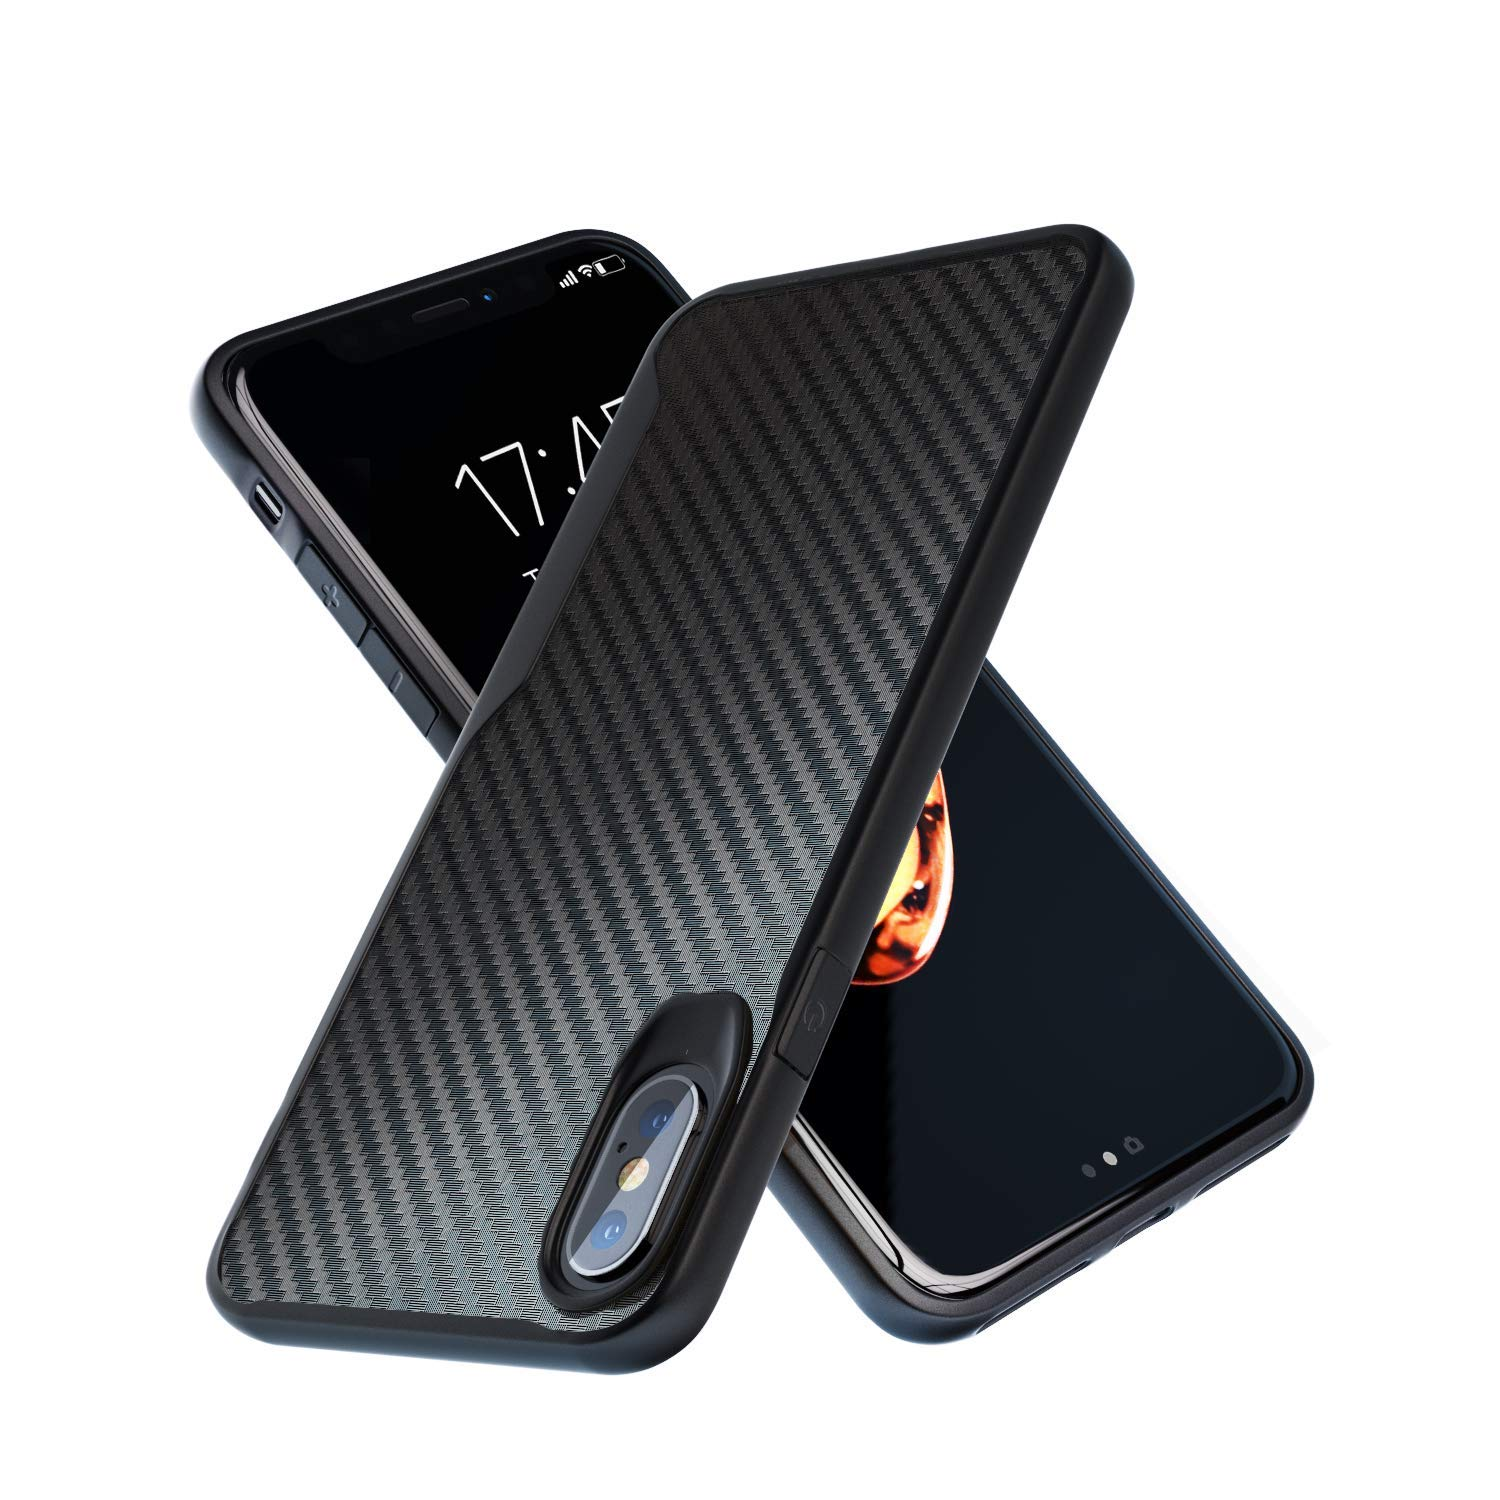 iPhone X Case | iPhone Xs Case | 10ft. Drop Tested | Carbon Case | Ultra Slim | Lightweight | Scratch Resistant | Wireless Charging | Compatible with Apple iPhone X /iPhone Xs - Black by Kitoo